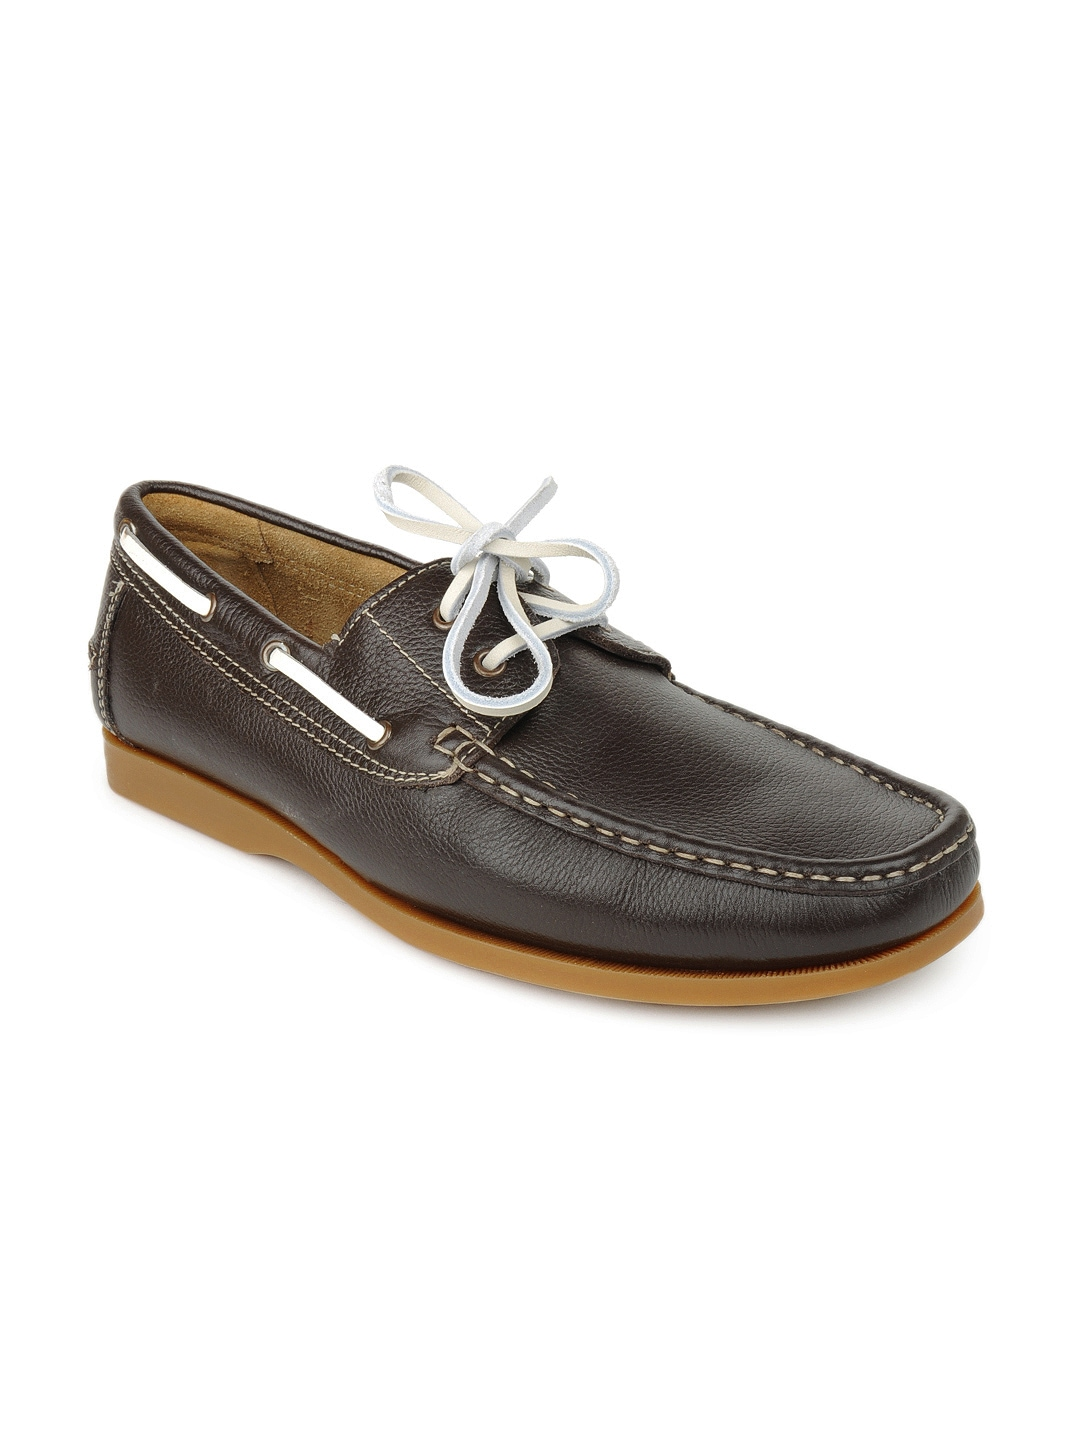 home footwear footwear casual shoes ruosh casual shoes